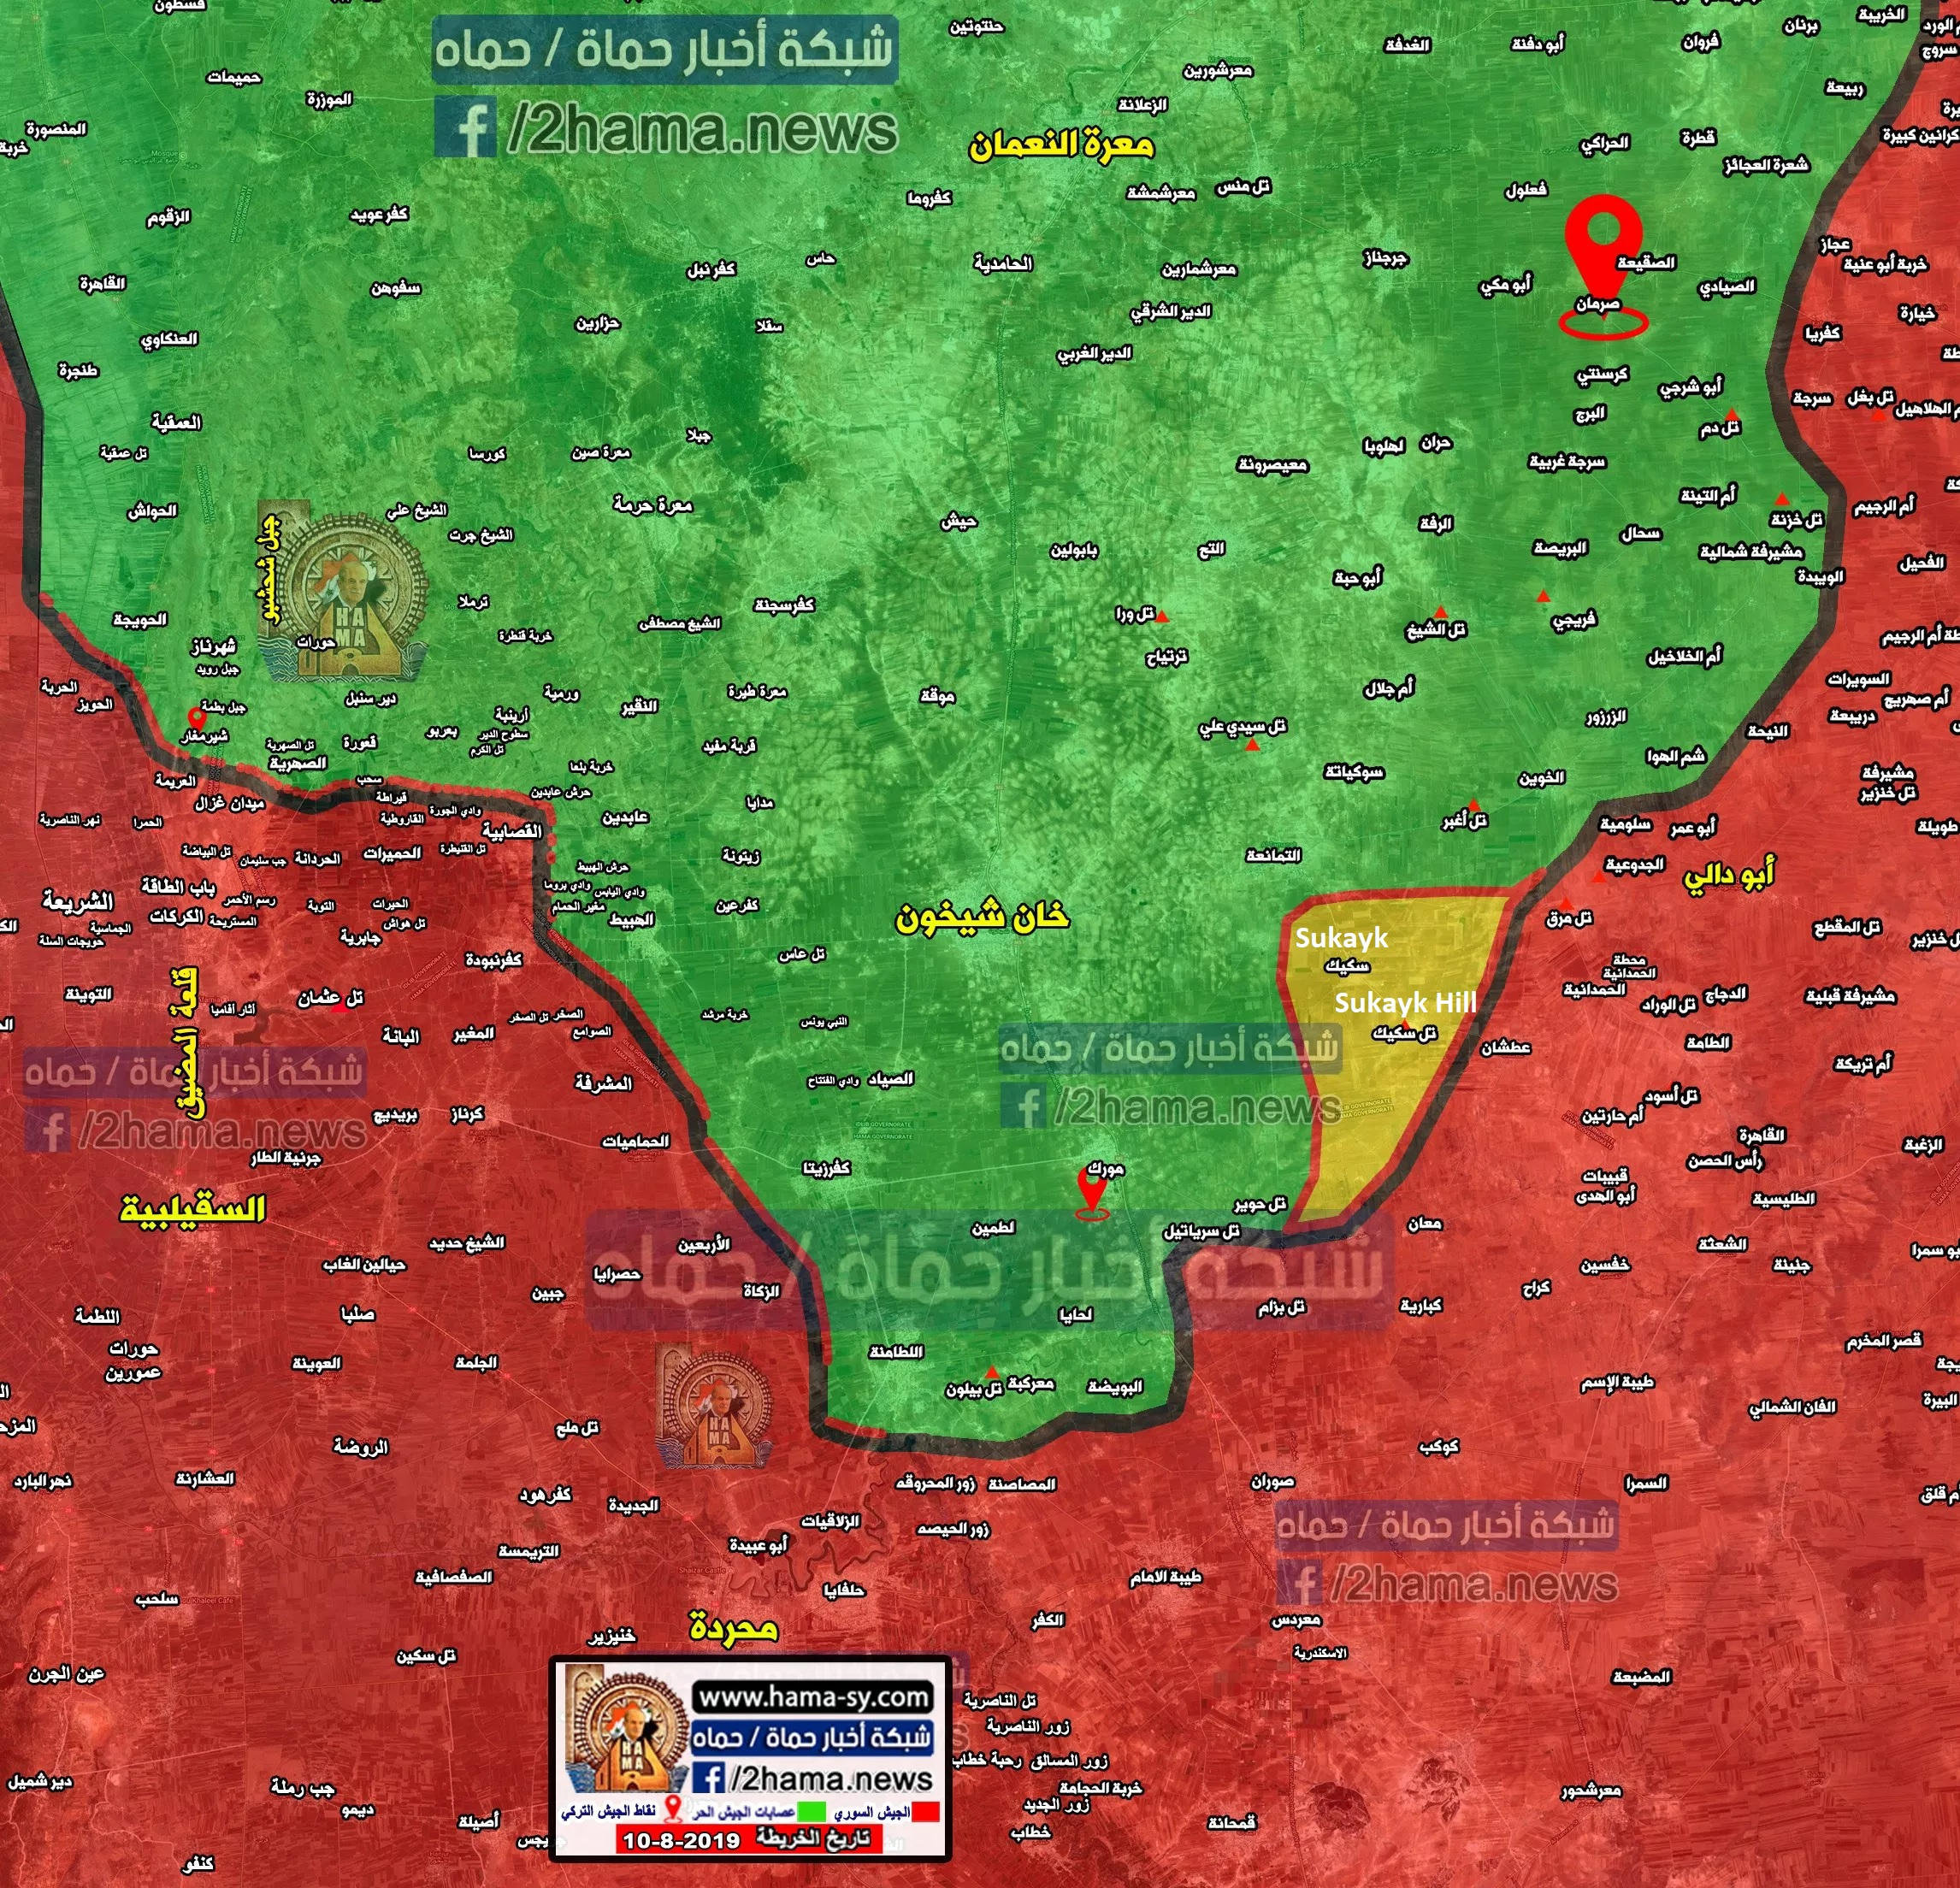 Syrian Army Liberates Key Town After Flanking Militants' Positions In Hama (Map)